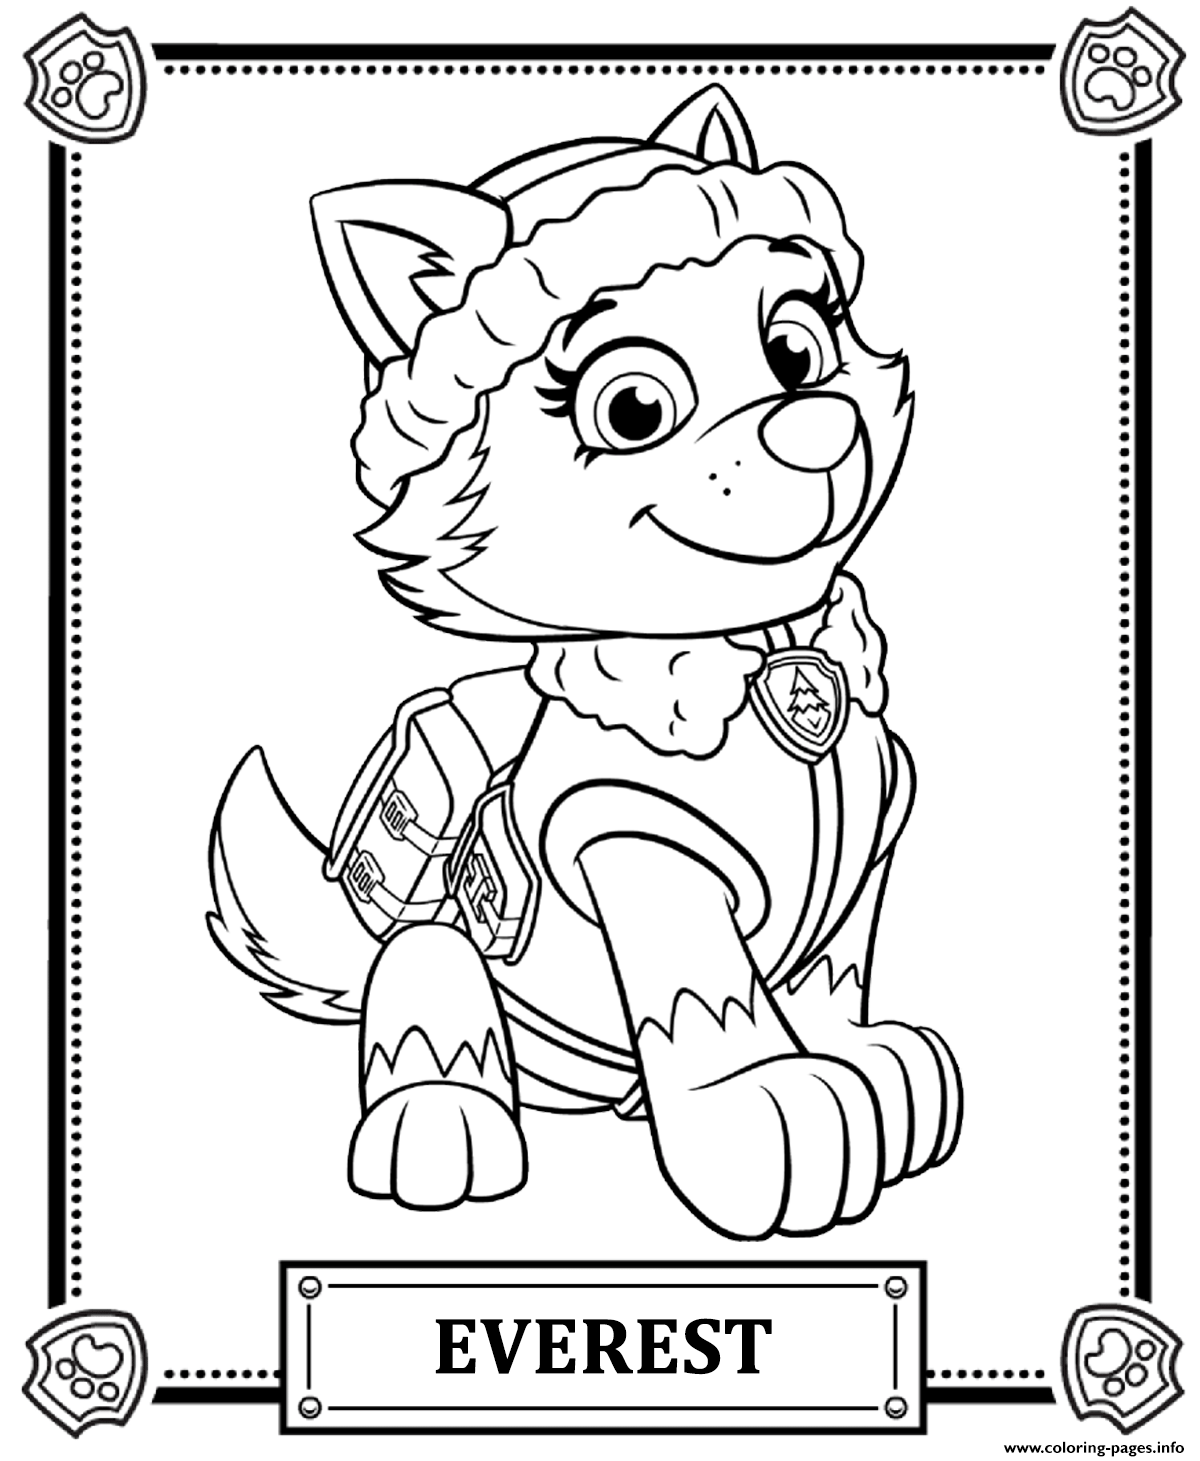 Print Paw Patrol Everest Coloring Pages